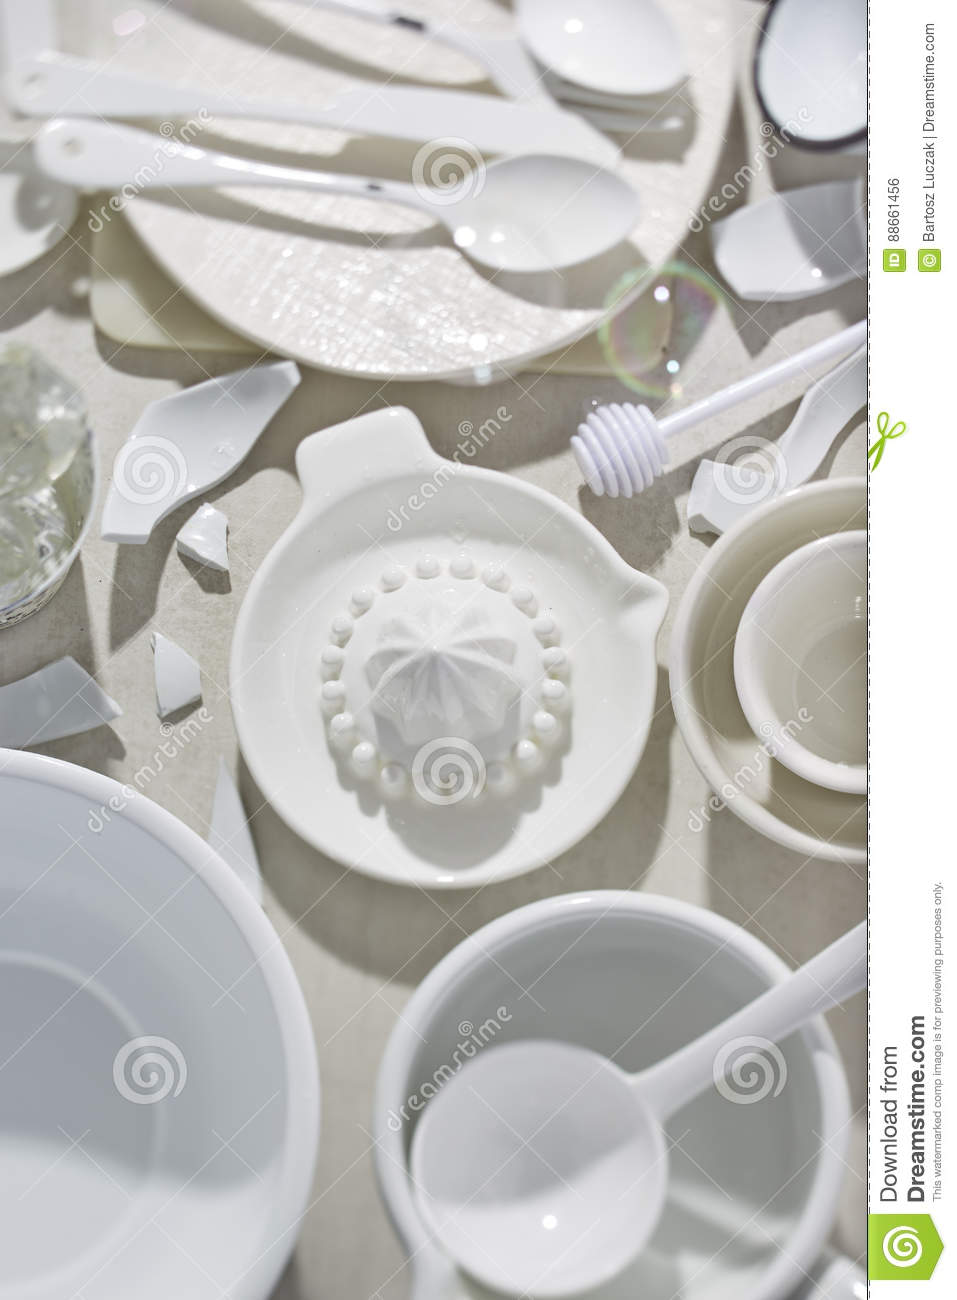 White Kitchen Plates Pots Cutlery Stock Photo - Image of cutlery ...